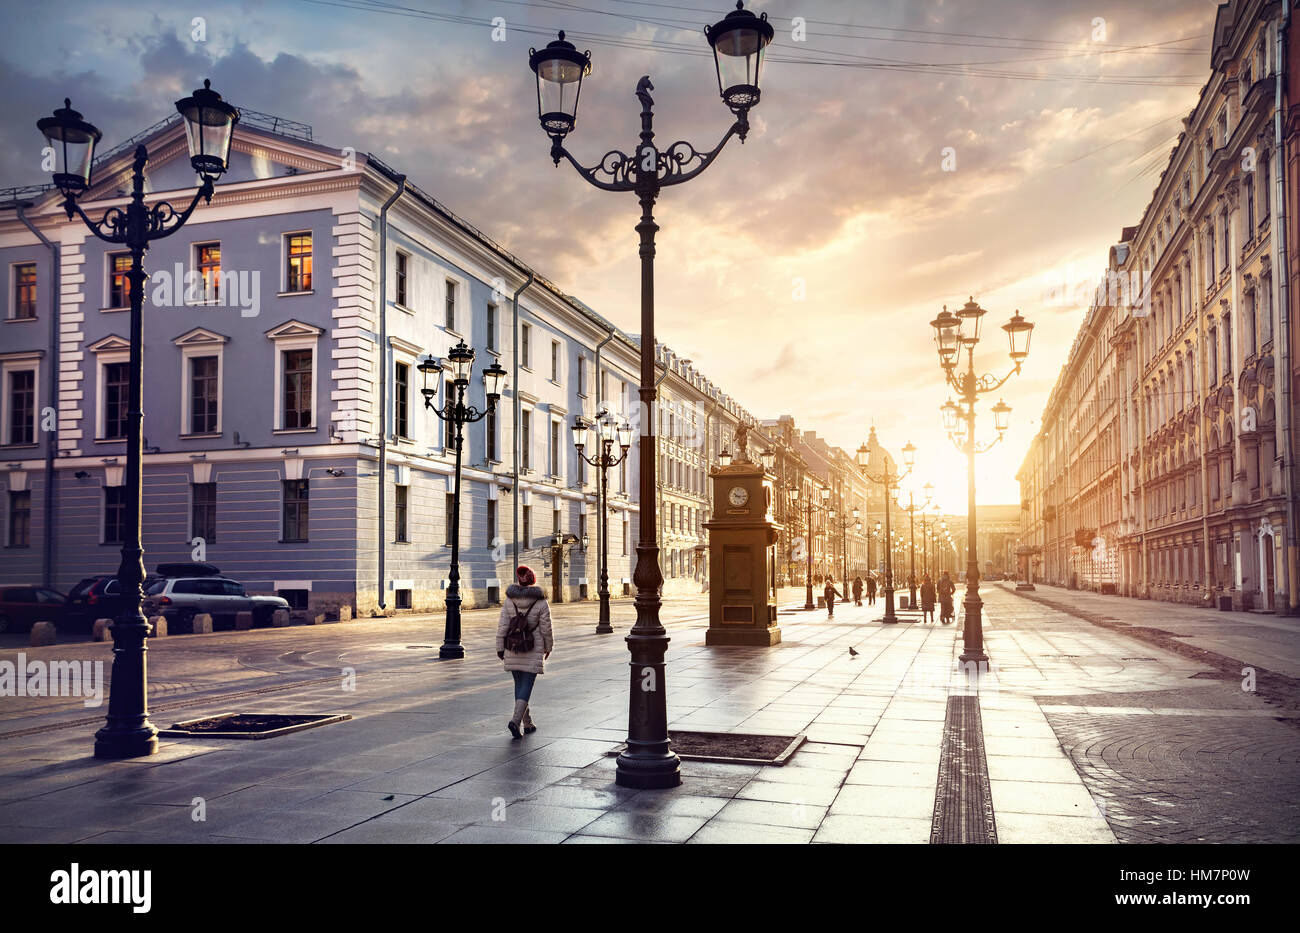 Woman in white jacket walking Malaya Konyushennaya  street with Lanterns and ol buildings in Saint Petersburg - Stock Image